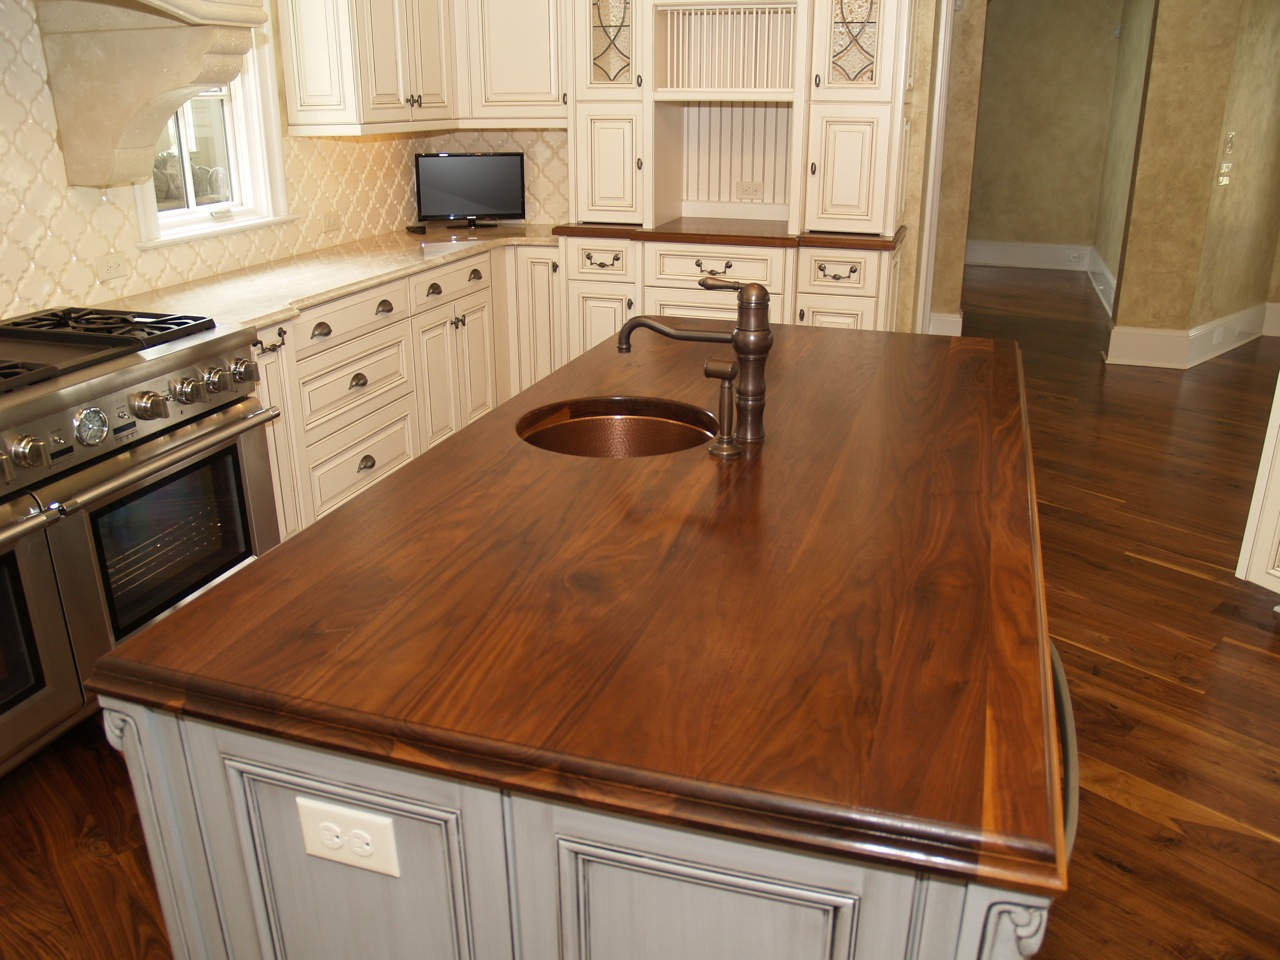 countertops wood kitchen countertops Walnut kitchen countertop wide plank flat grain construction 1 75 thick large double roman ogee edge undermount sink with permanent finish